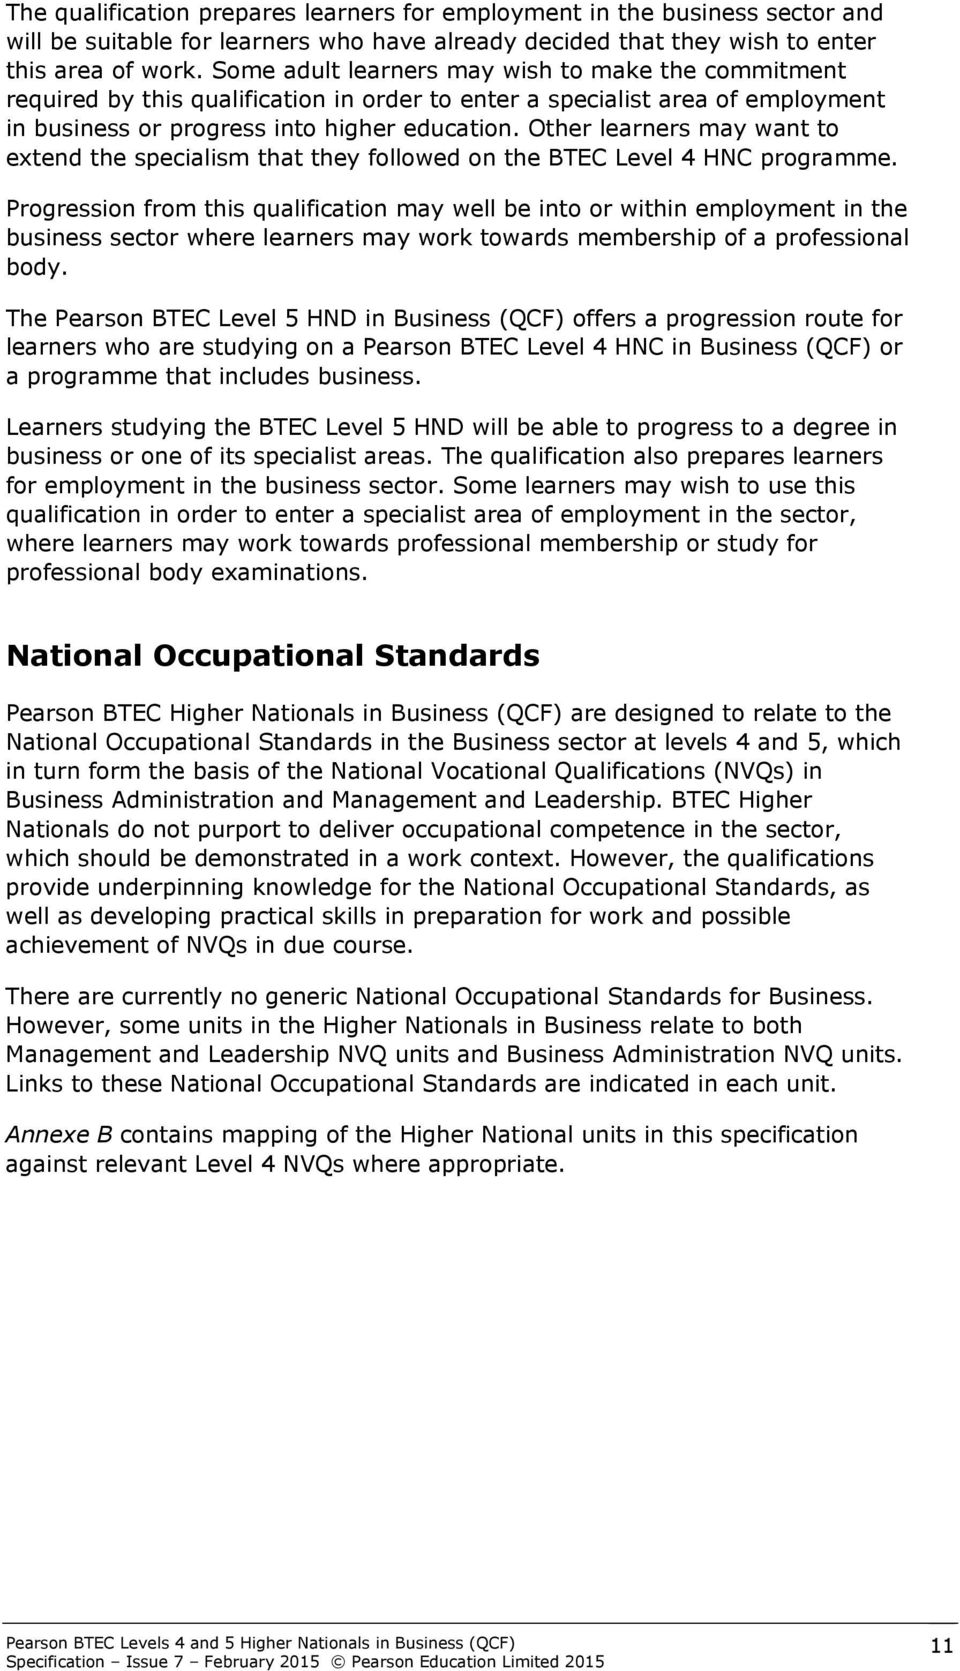 Other learners may want to extend the specialism that they followed on the BTEC Level 4 HNC programme.